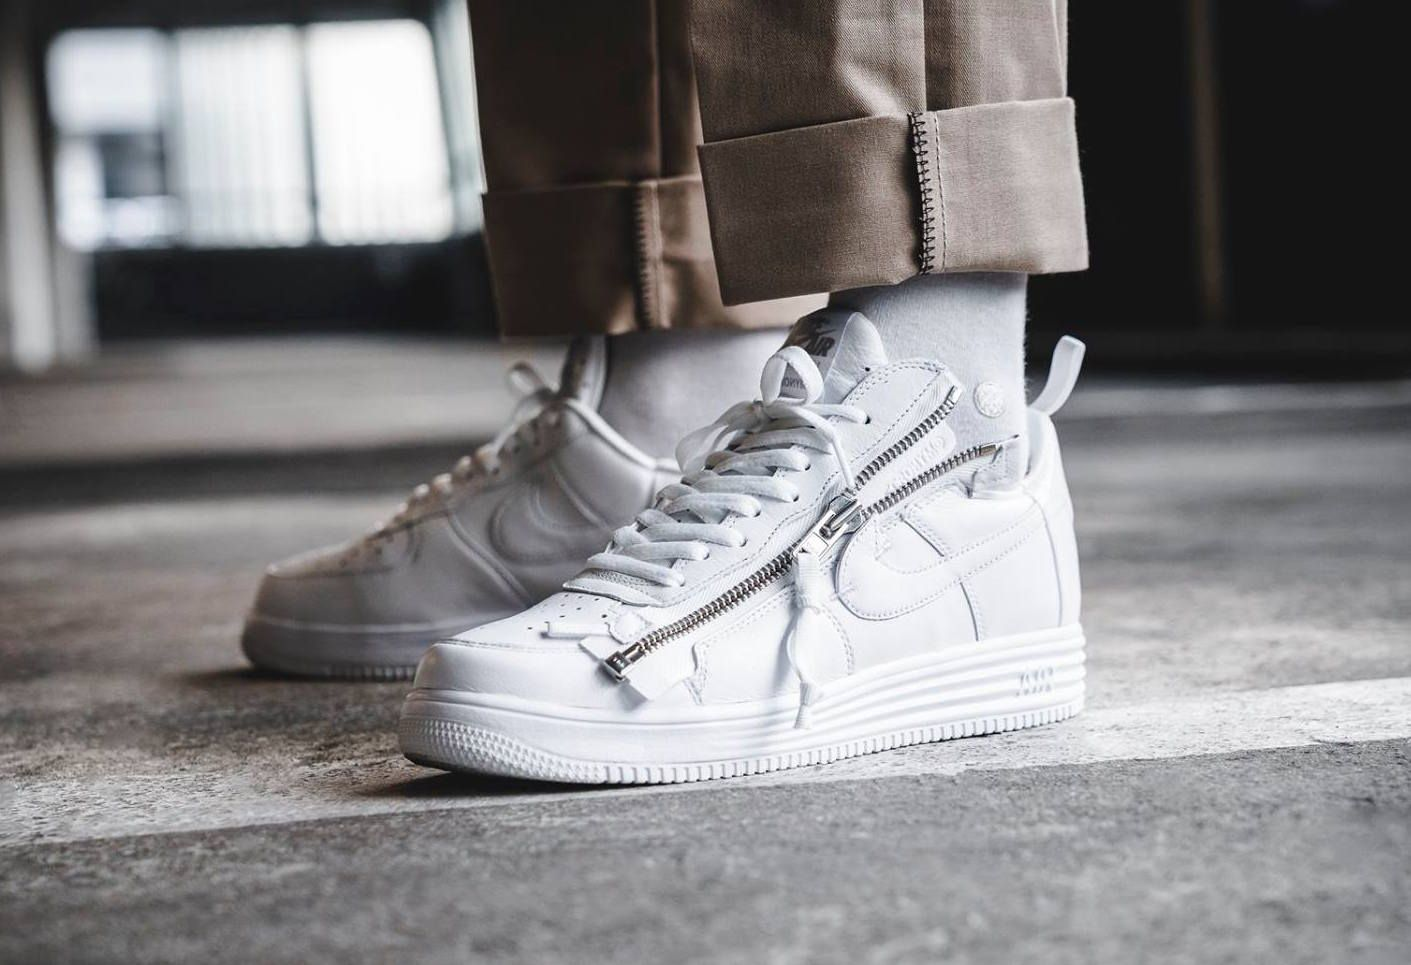 Are You Looking Forward To The Acronym x Nike Lunar Force 1 Low